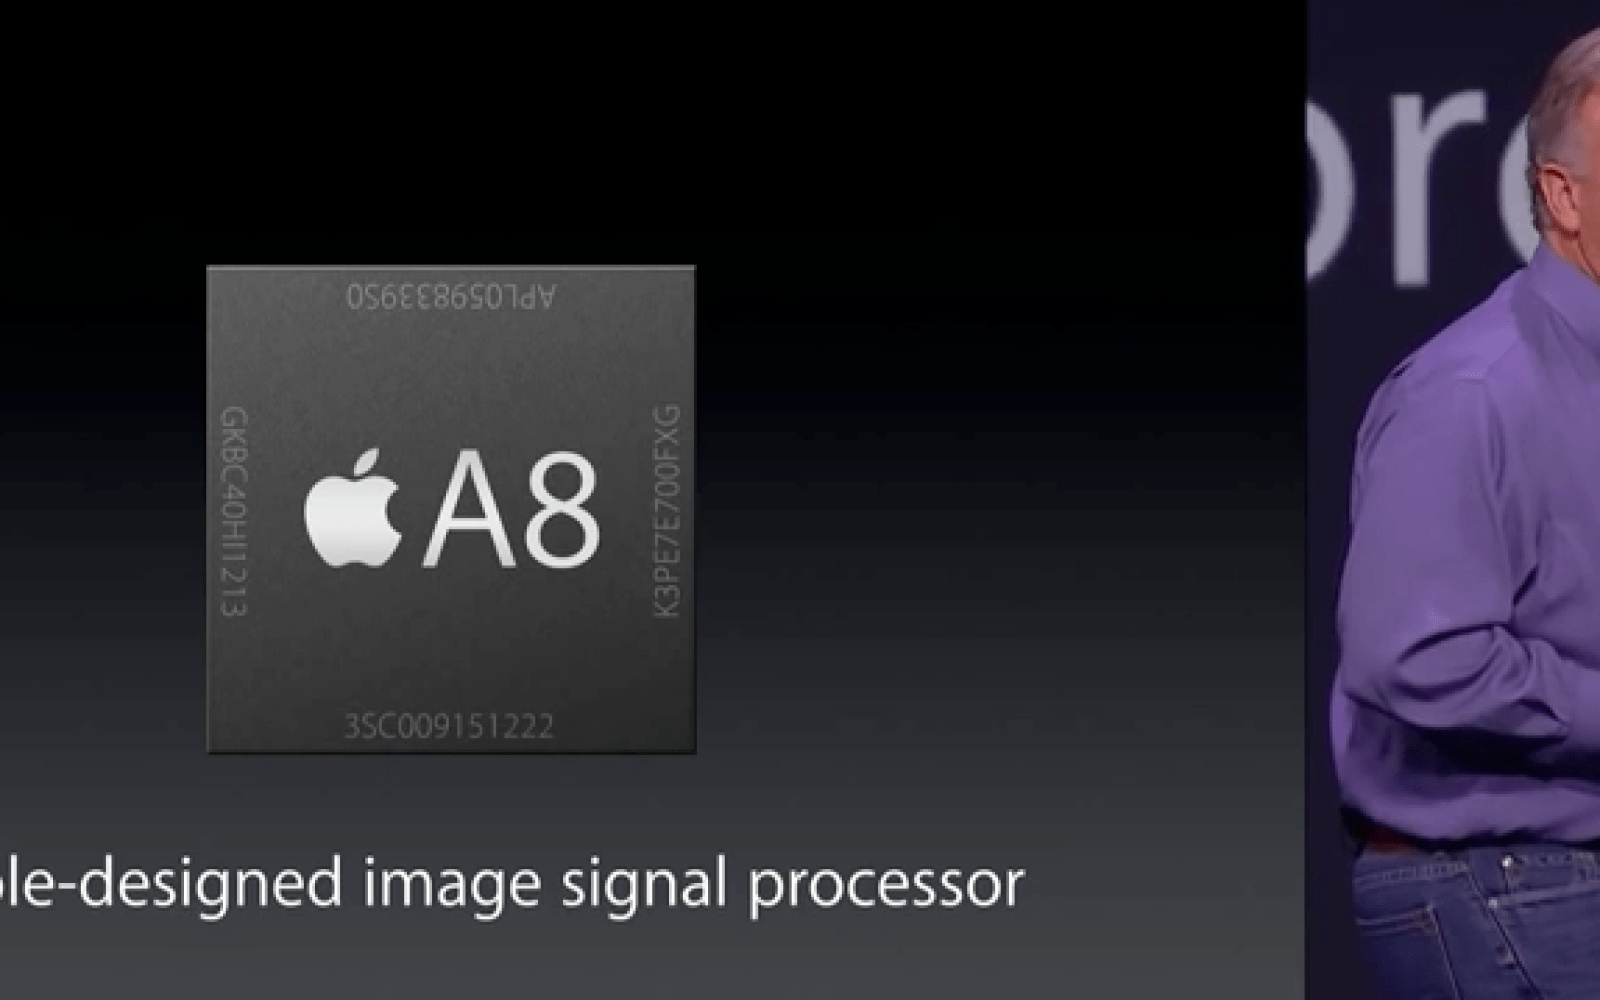 Apple's A8 processor found in the iPhone 6 and 6 Plus can reportedly handle 4K video playback